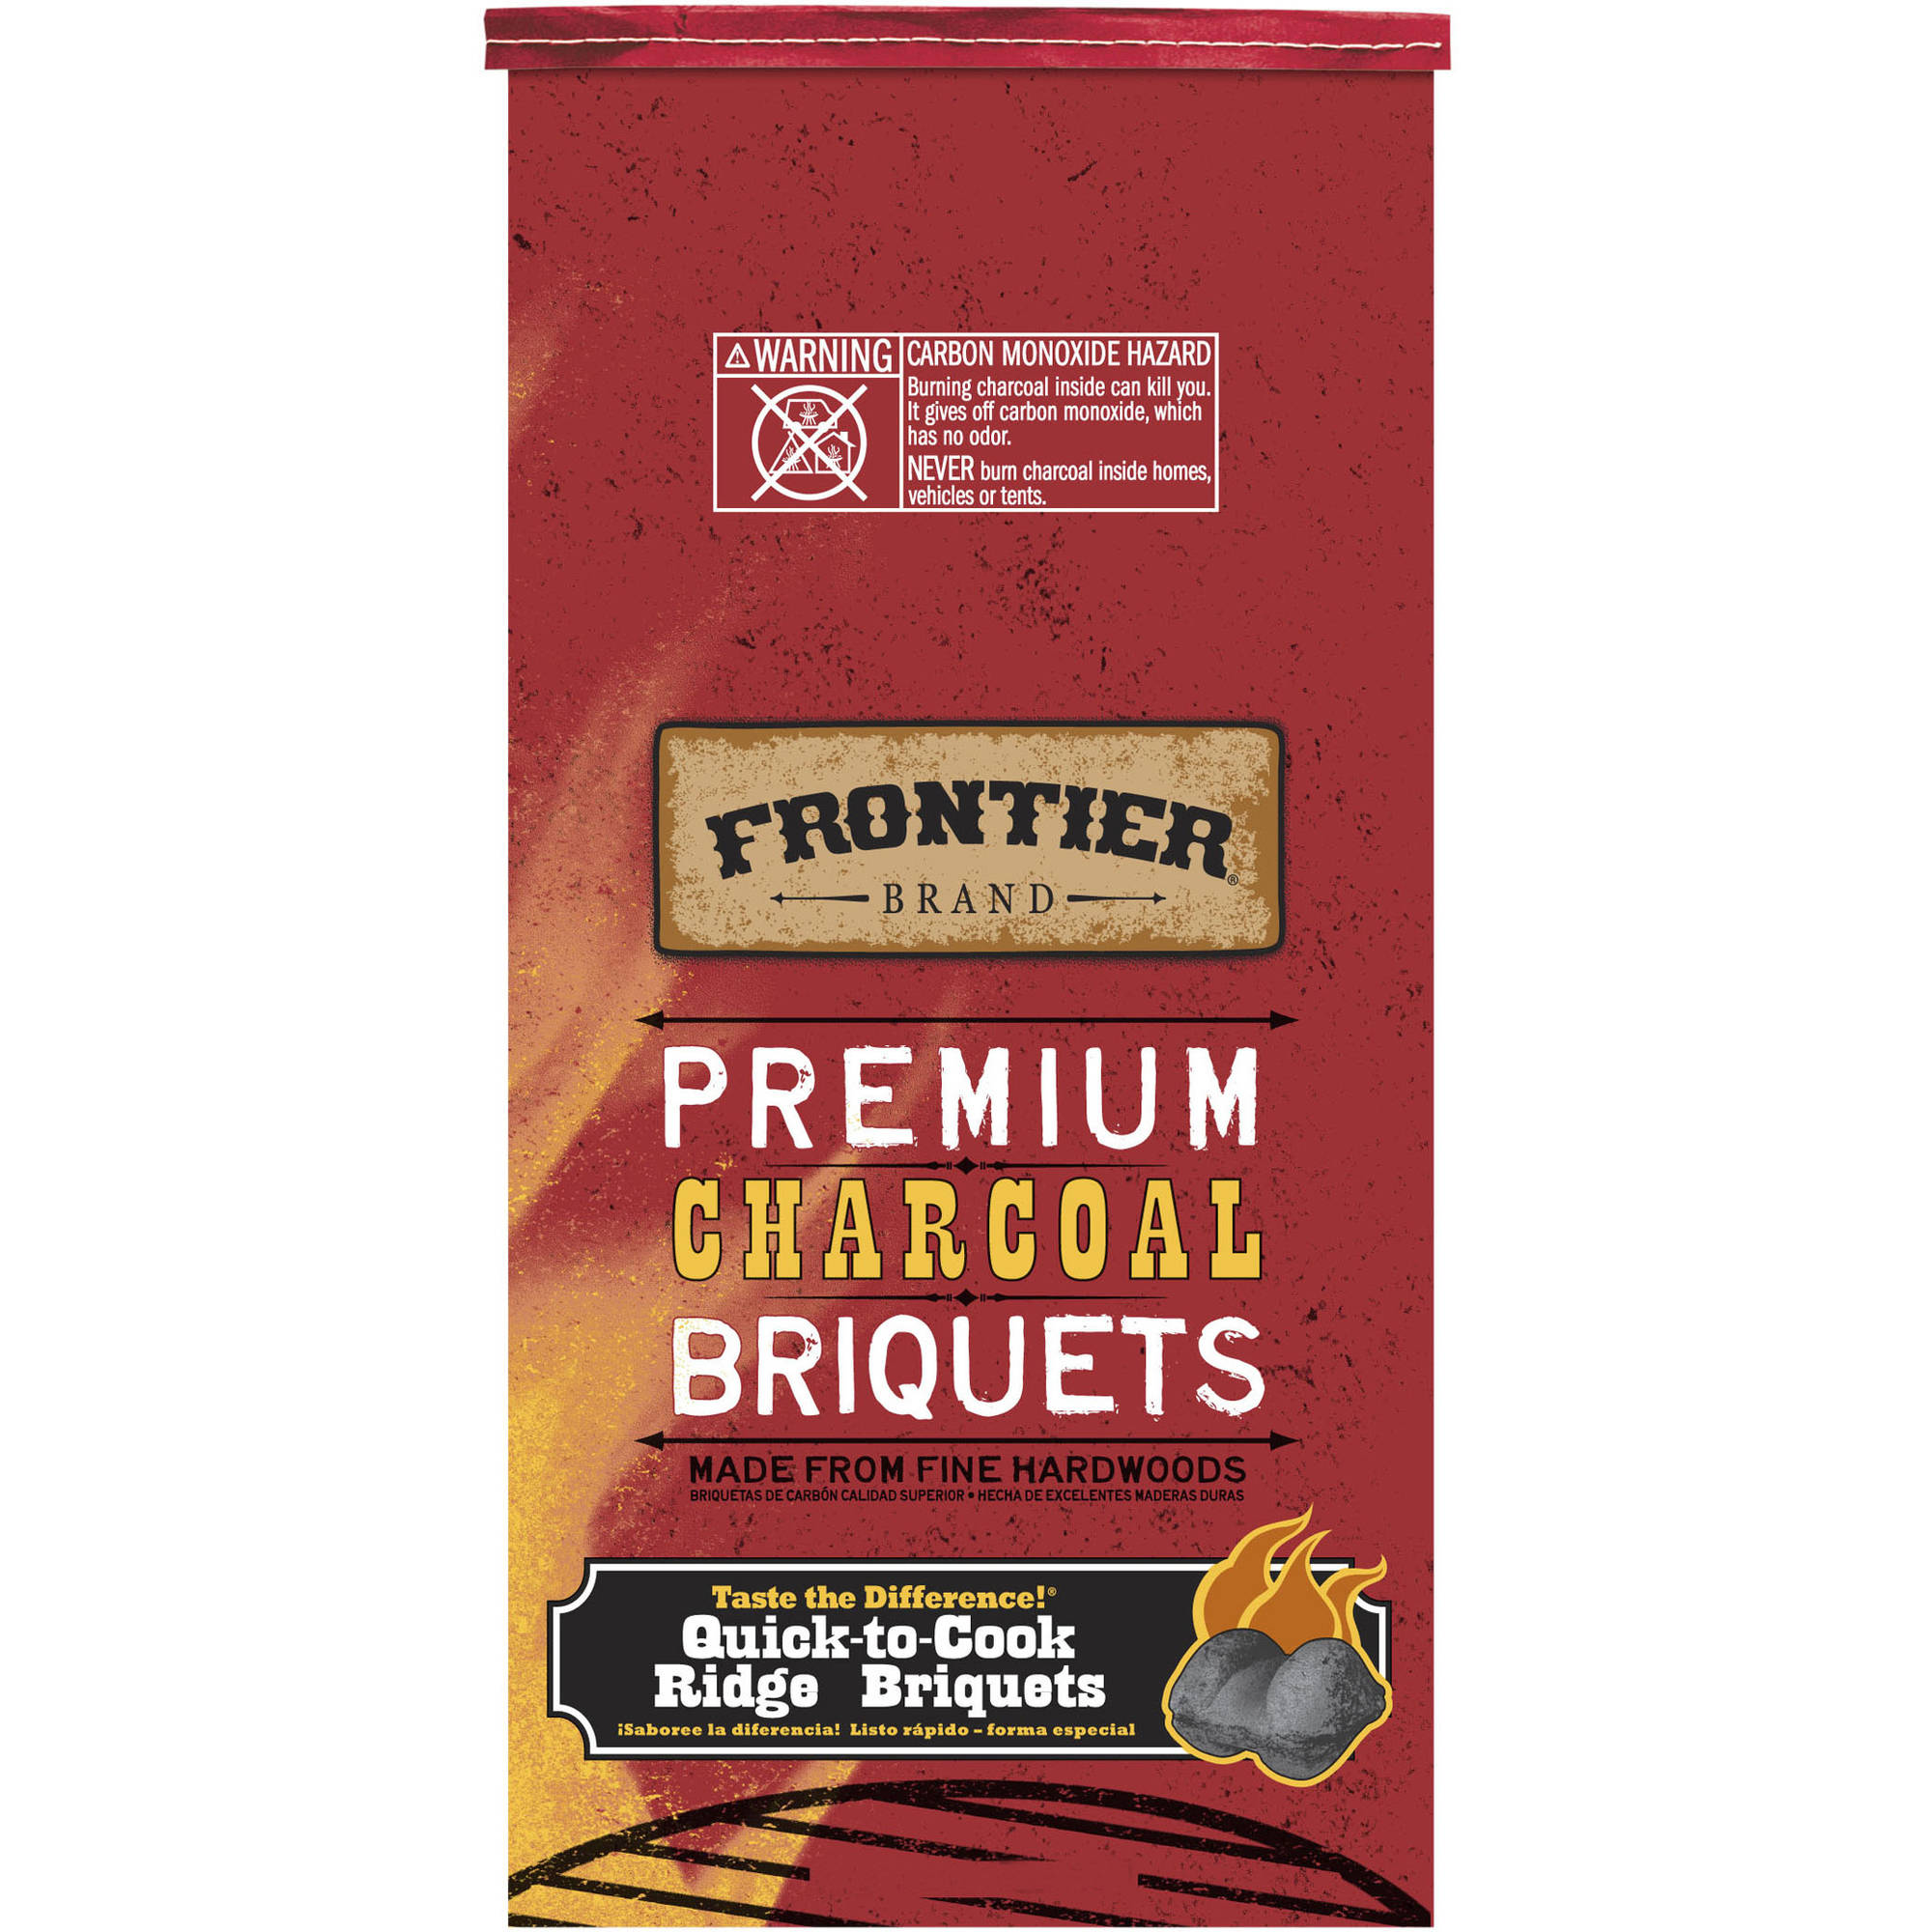 Frontier 192-330-328 7.7 lbs Charcoal Briquets